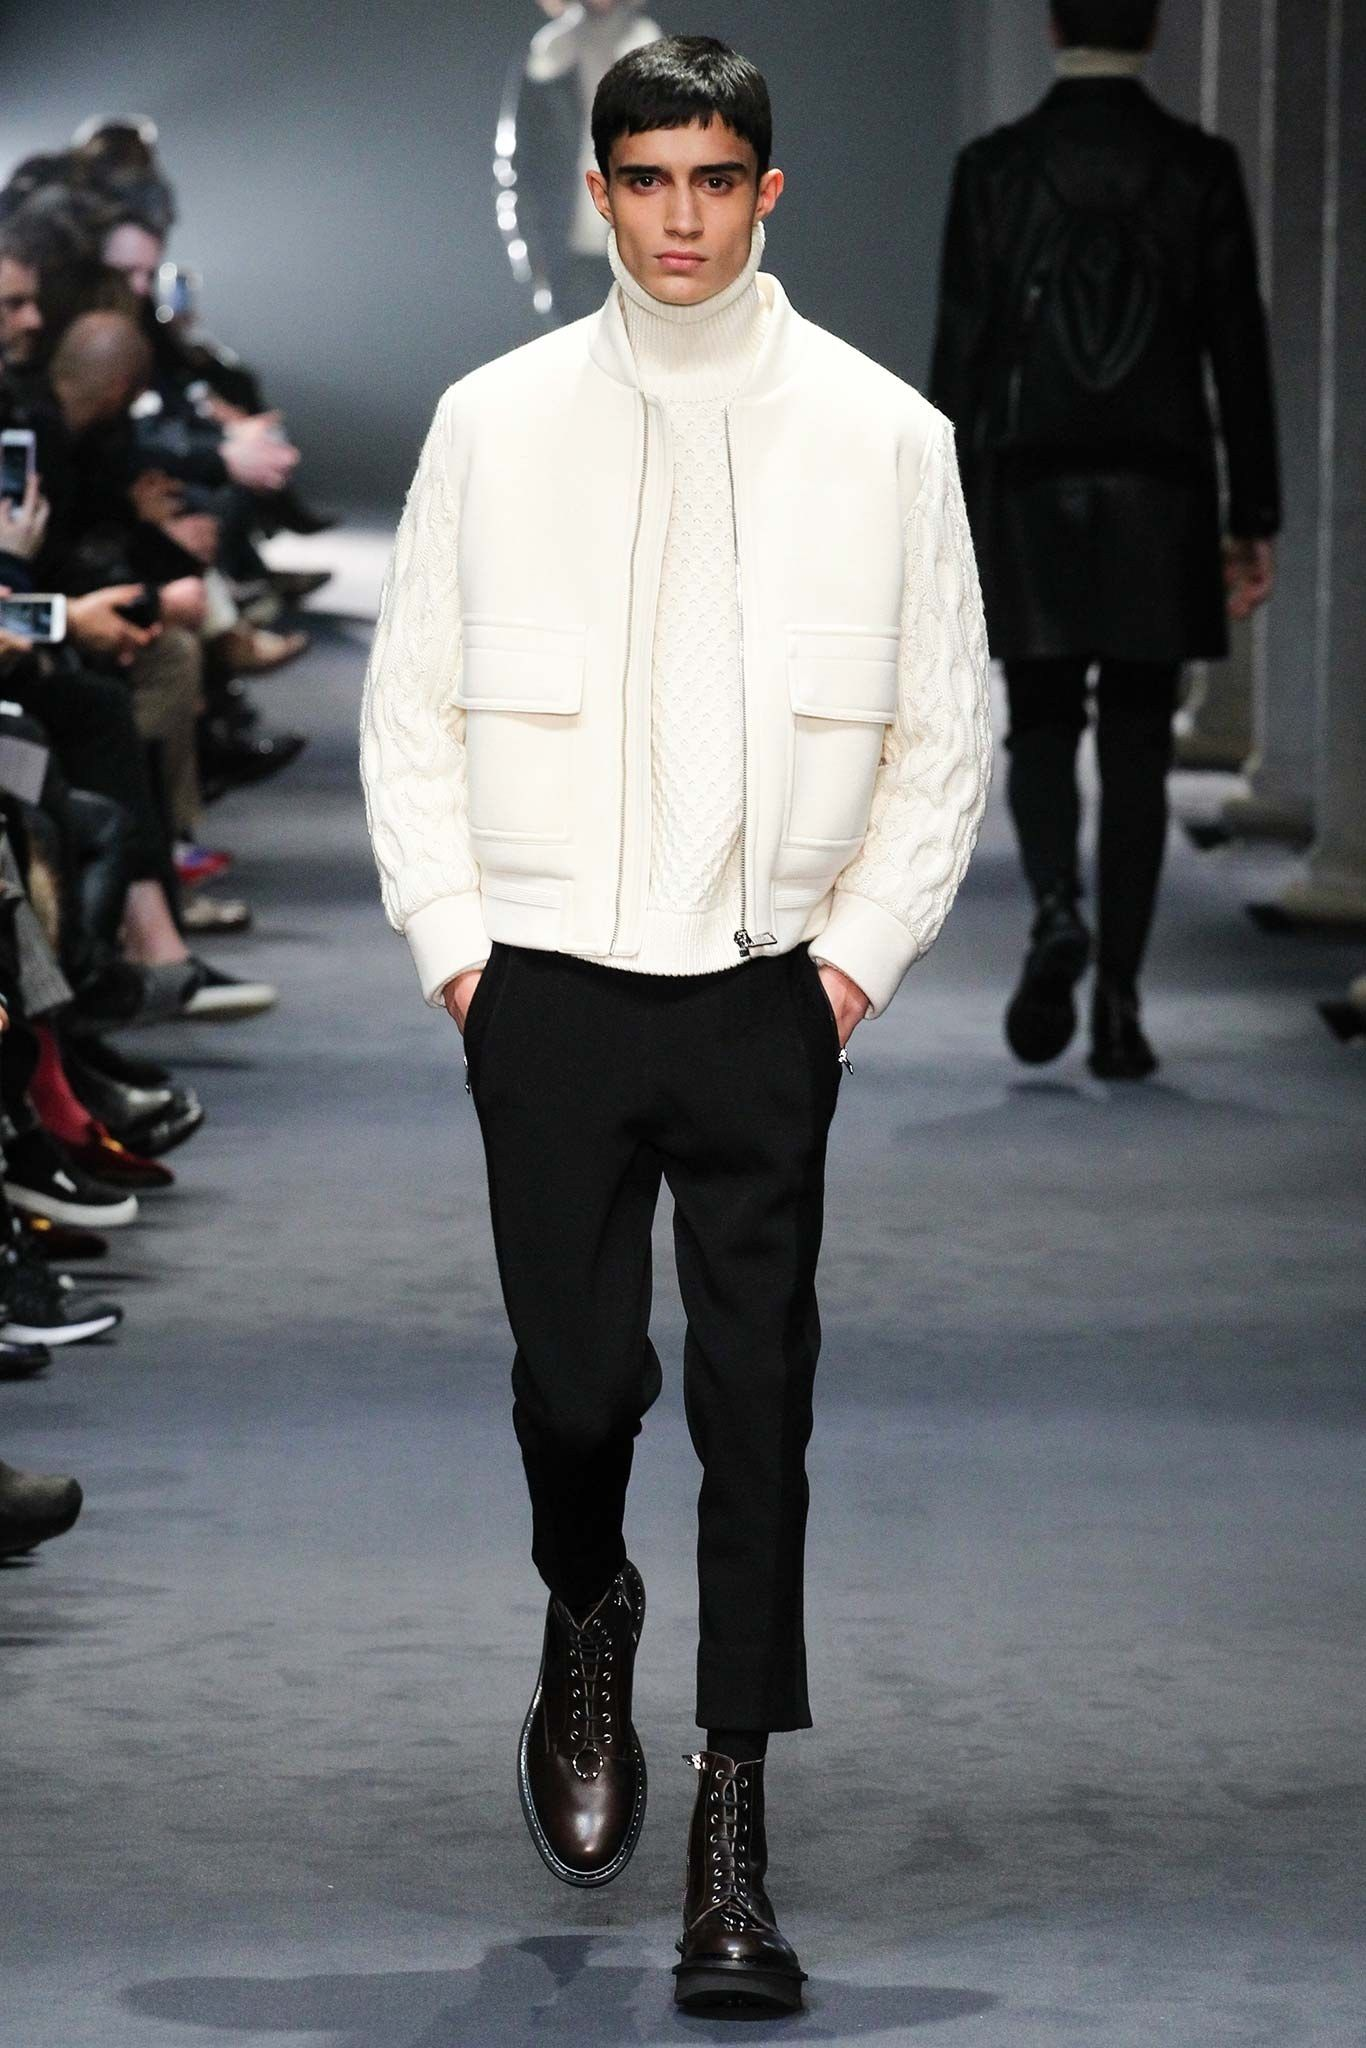 Neil Barrett Fall 2015 Menswear Fashion Show is part of Menswear - Neil Barrett Fall 2015 Menswear collection, runway looks, beauty, models, and reviews